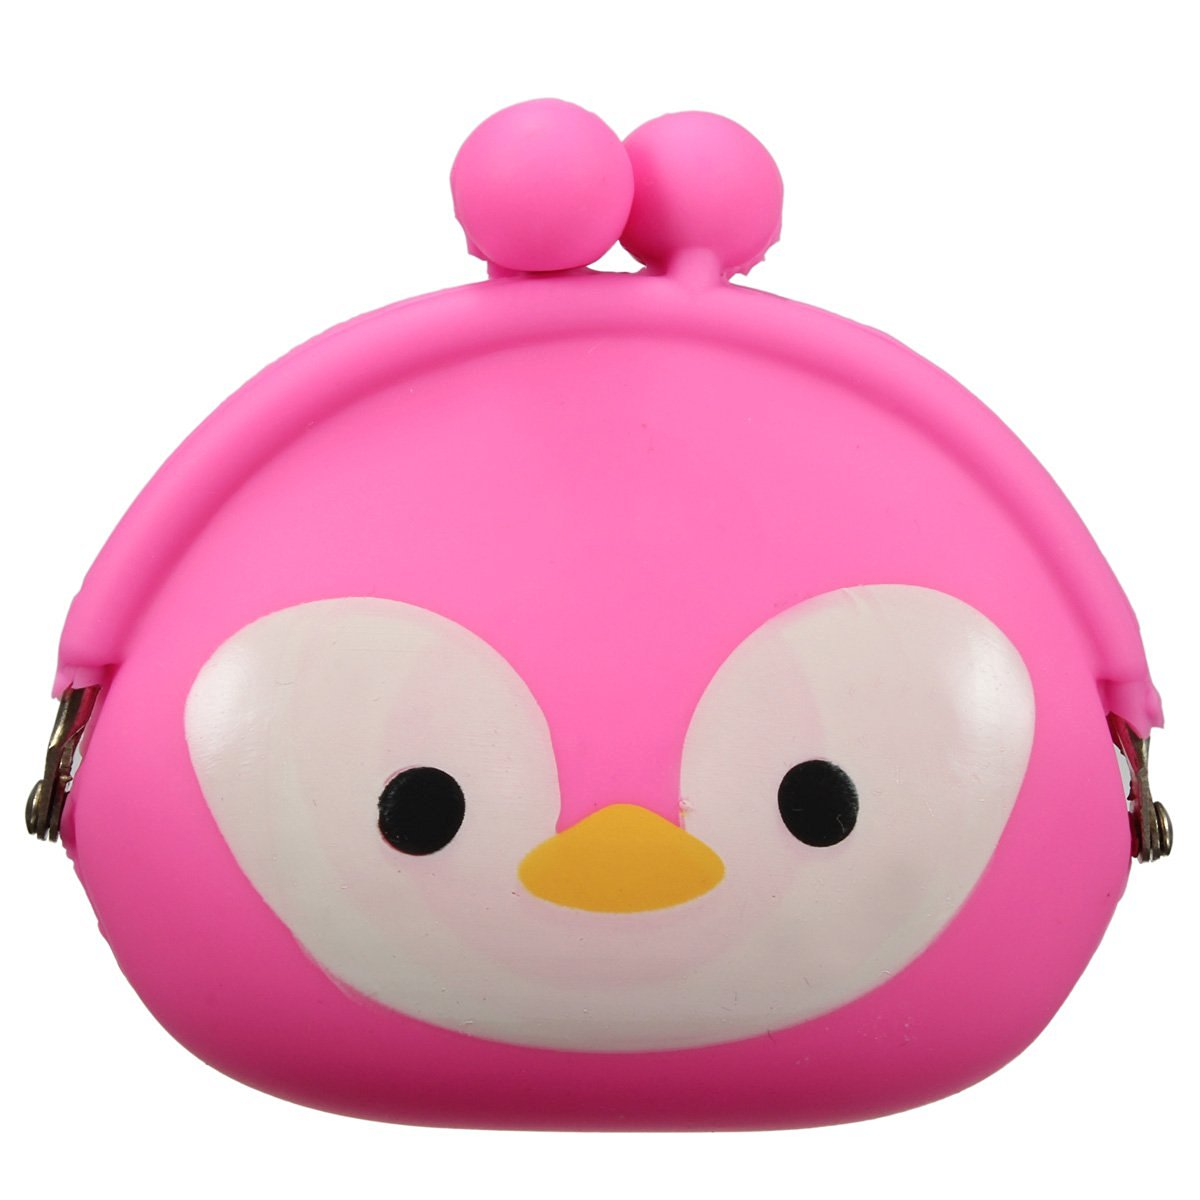 5) Women Girls Wallet Kawaii Cute Cartoon Animal Silicone Jelly Coin Bag Purse Kids Gift Penguin